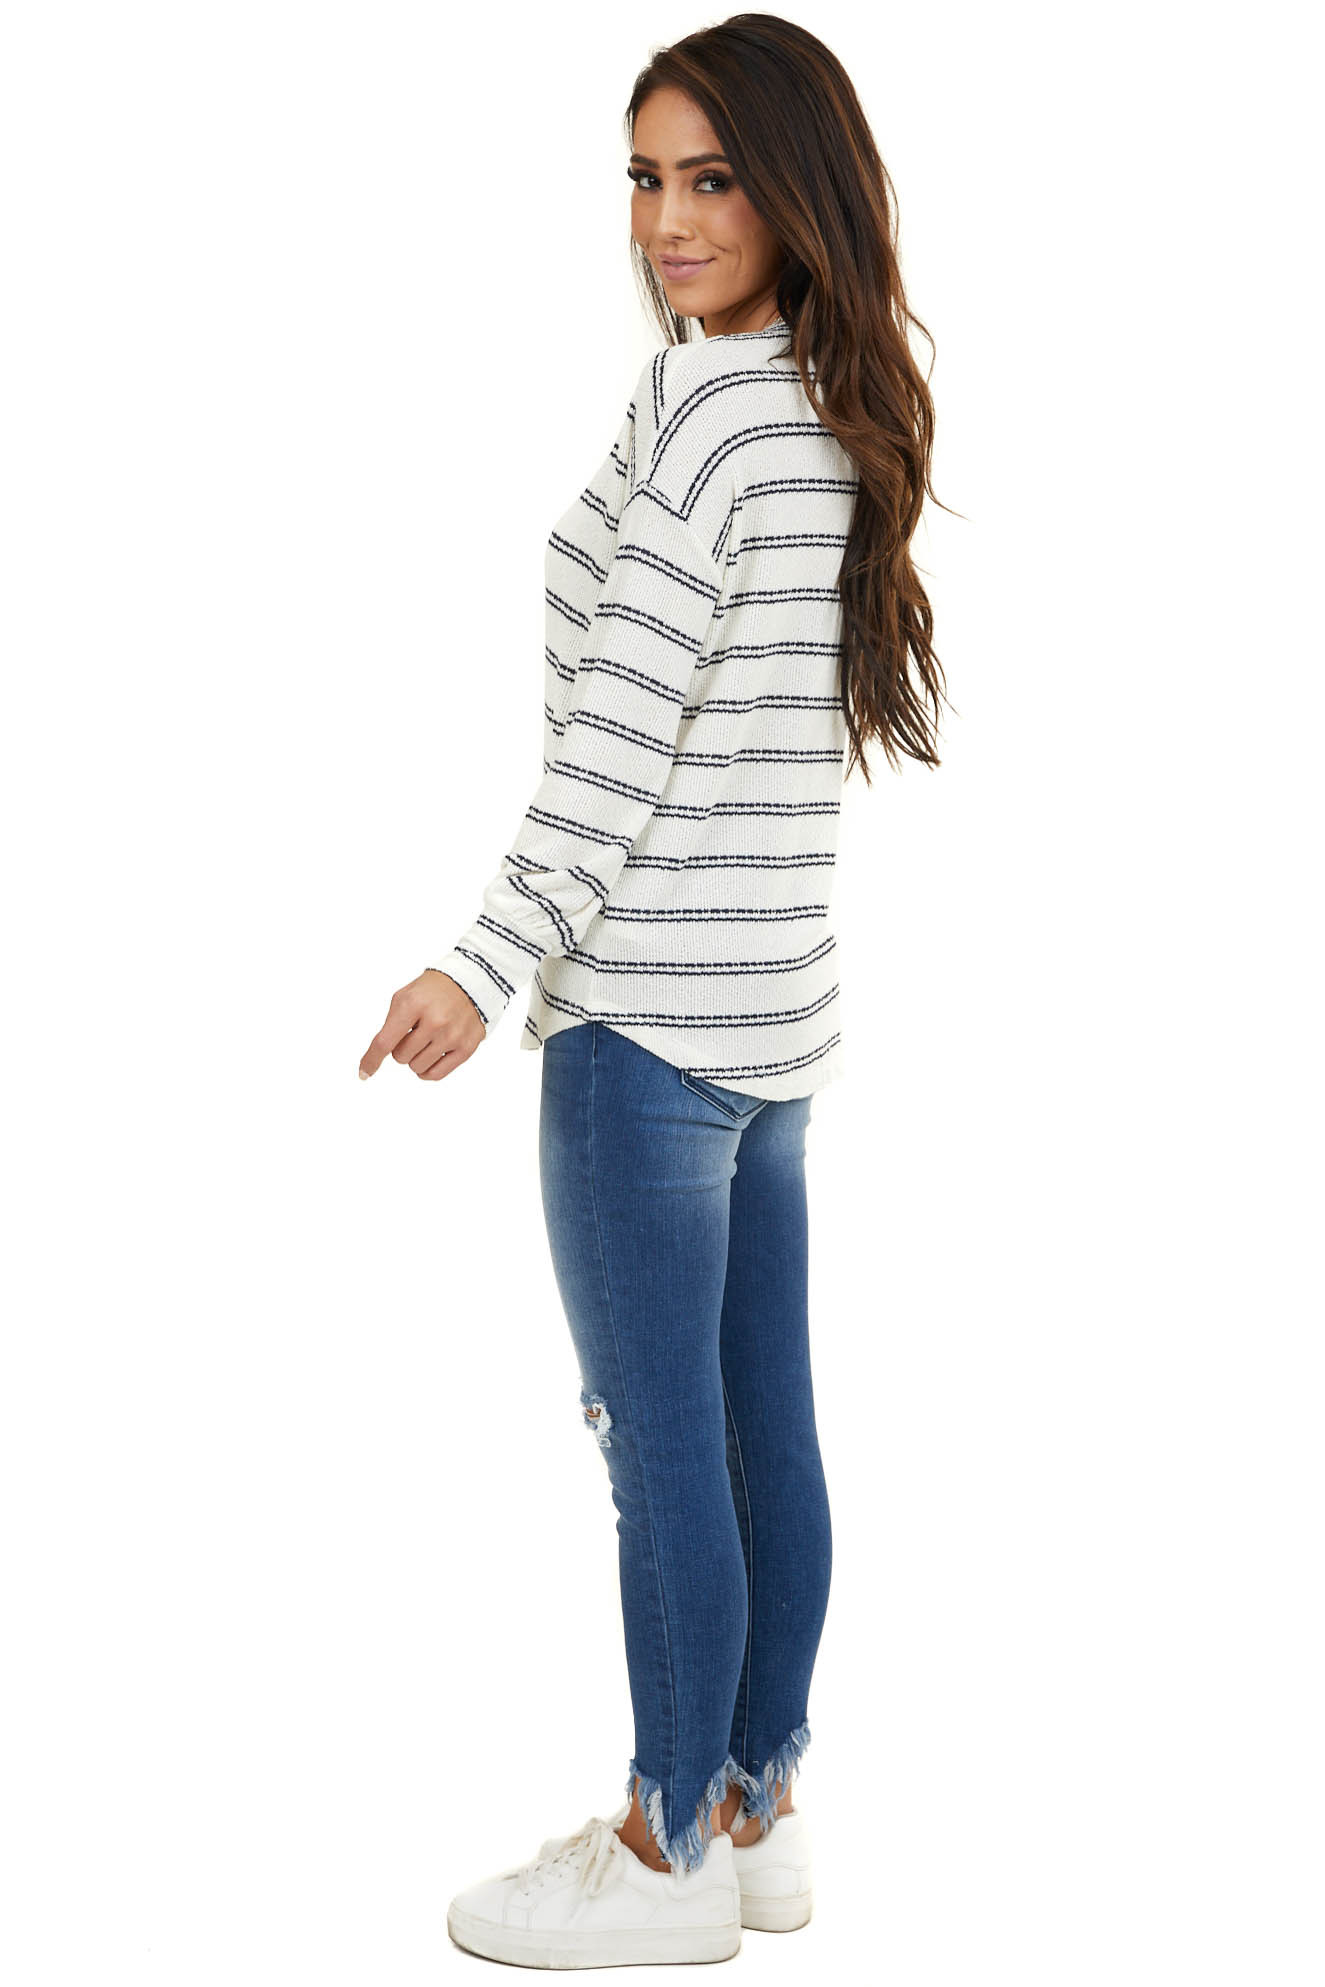 Ivory and Black Striped Knit Top with Long Sleeves